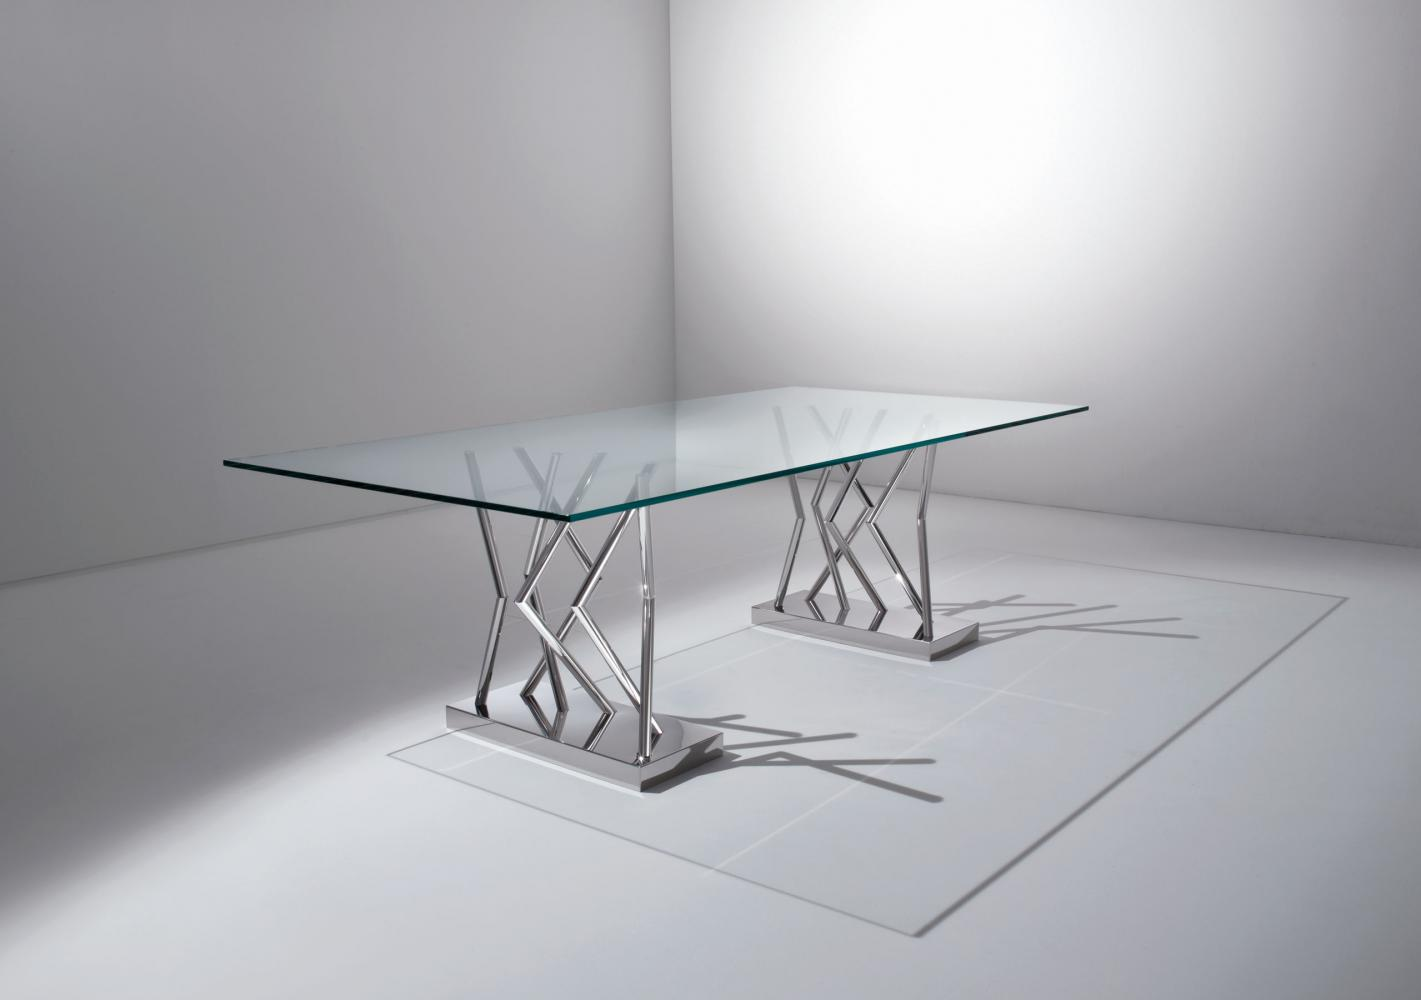 Modern glass and steel table designed by Sottsass Associati